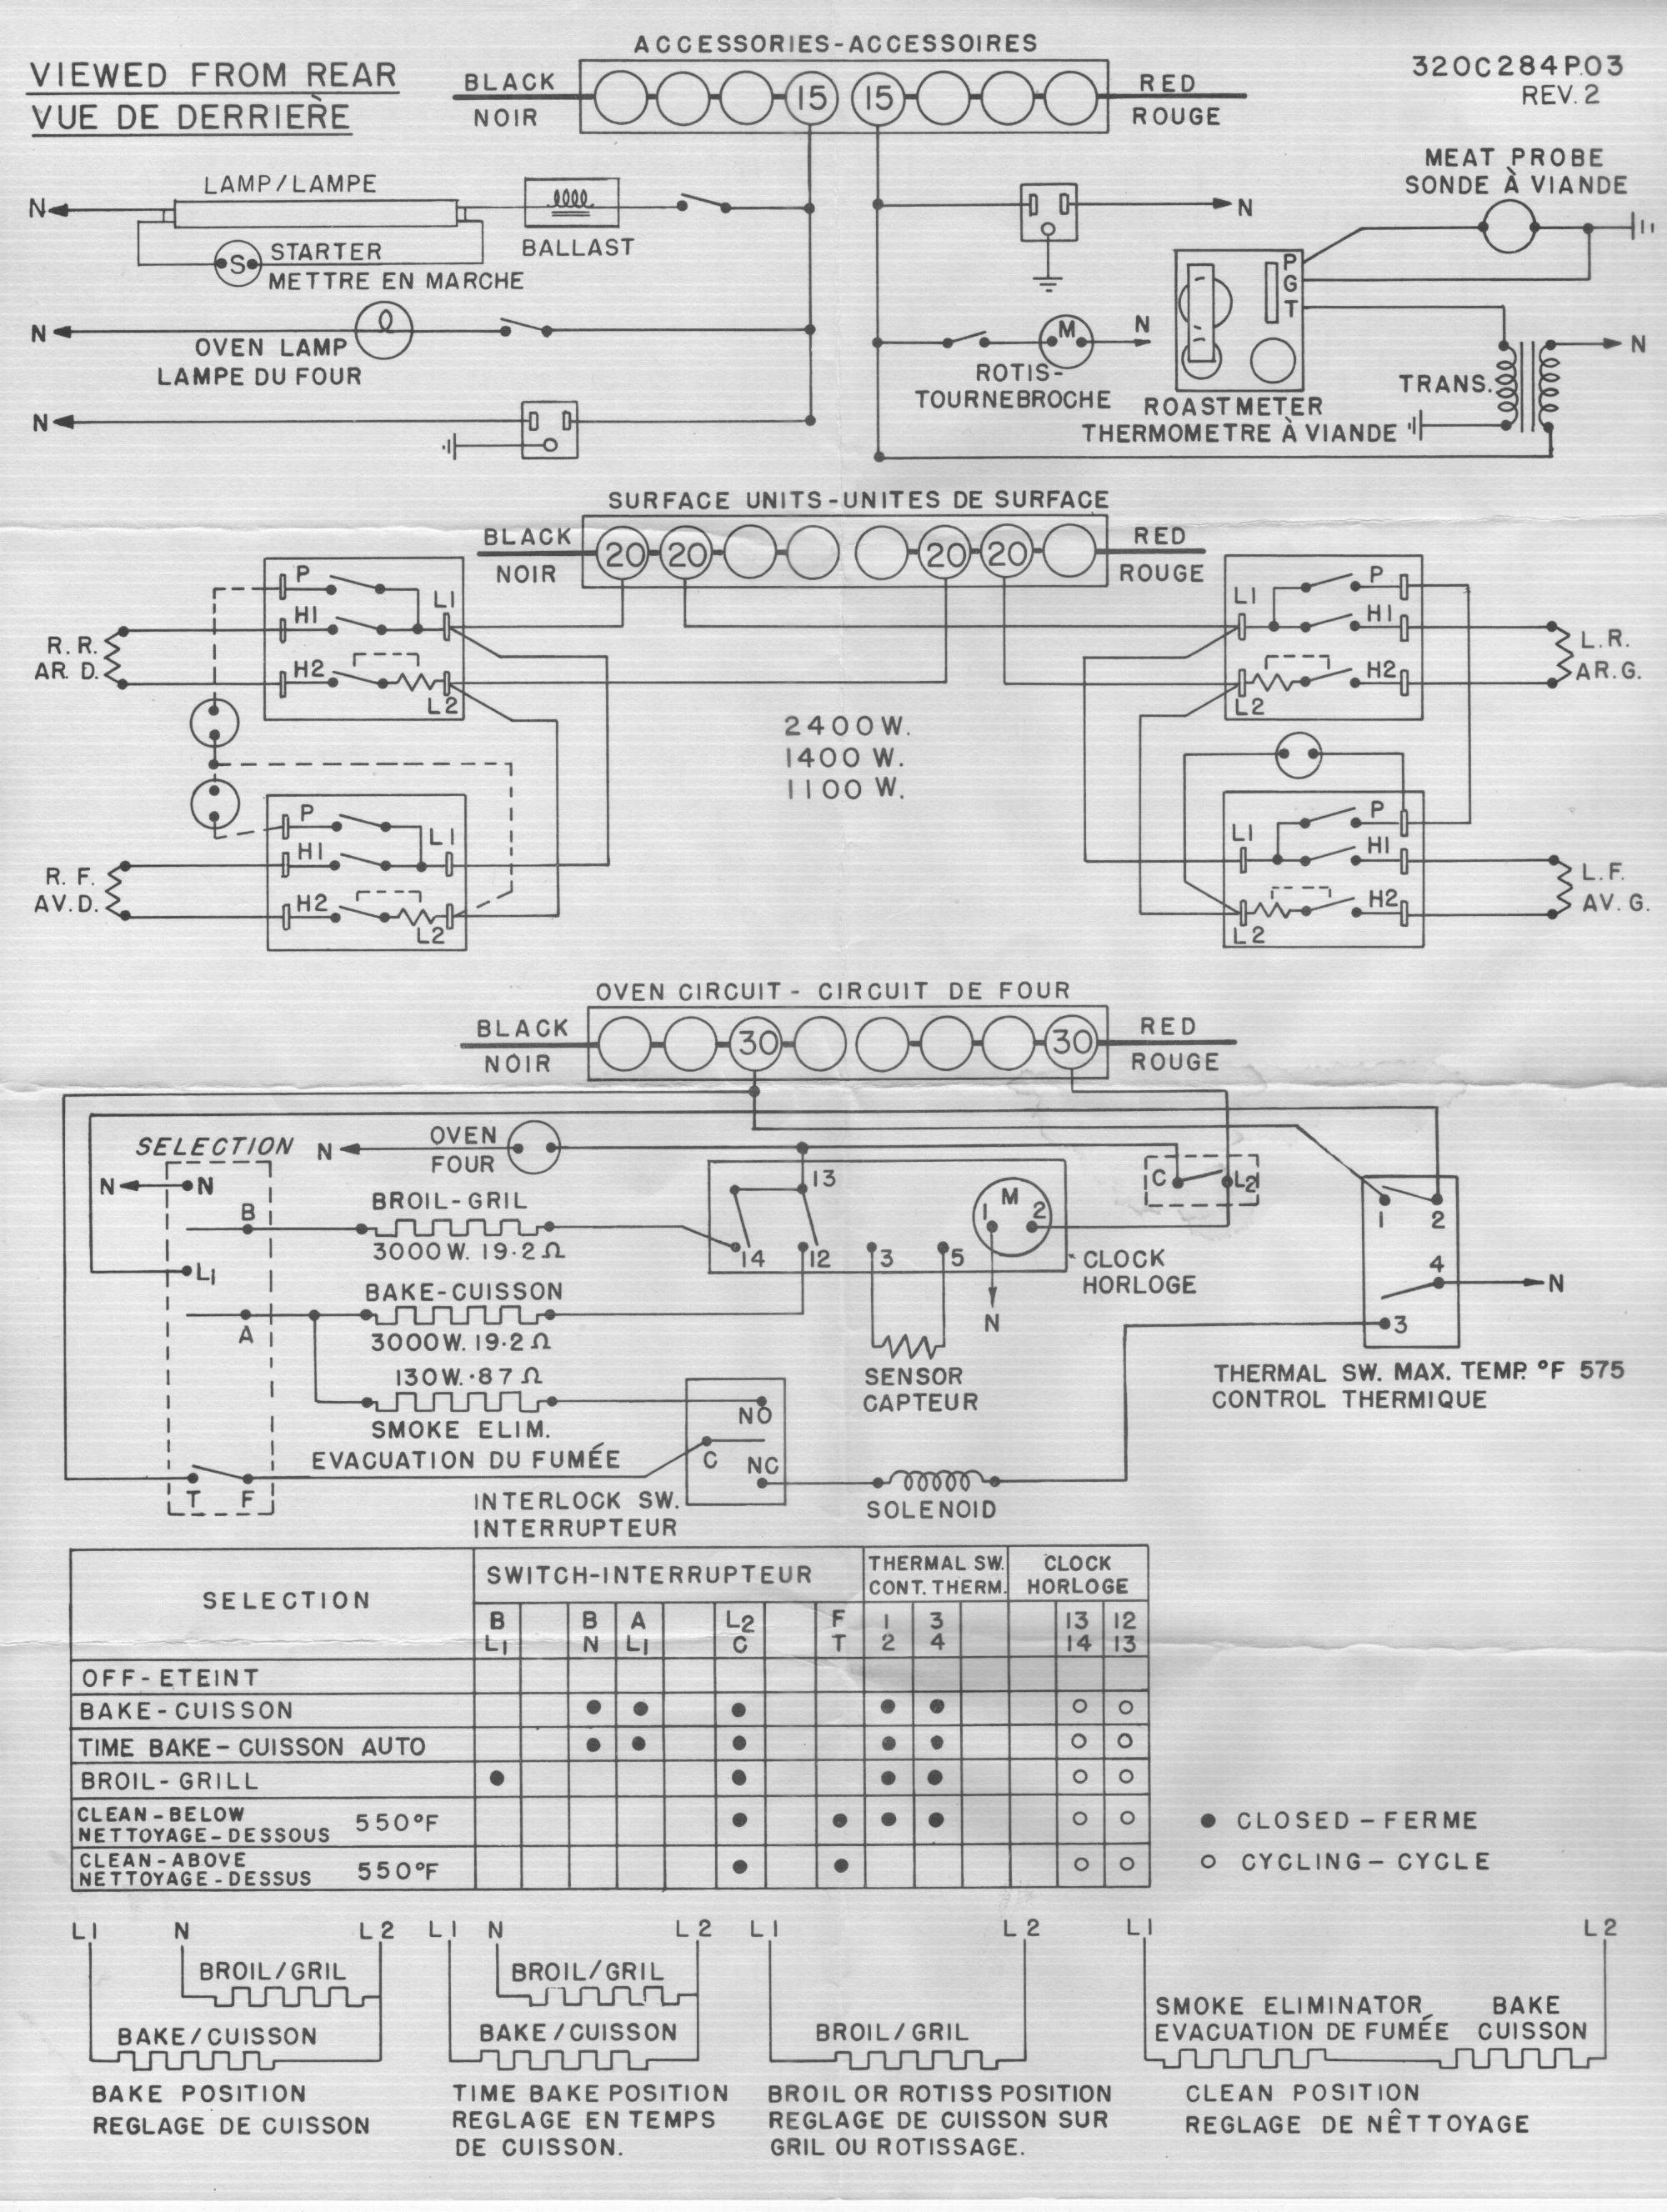 whirlpool microwave hood wiring diagram 1999 toyota 4runner fuel pump schematics best library stove schematic completed diagrams oven circuit